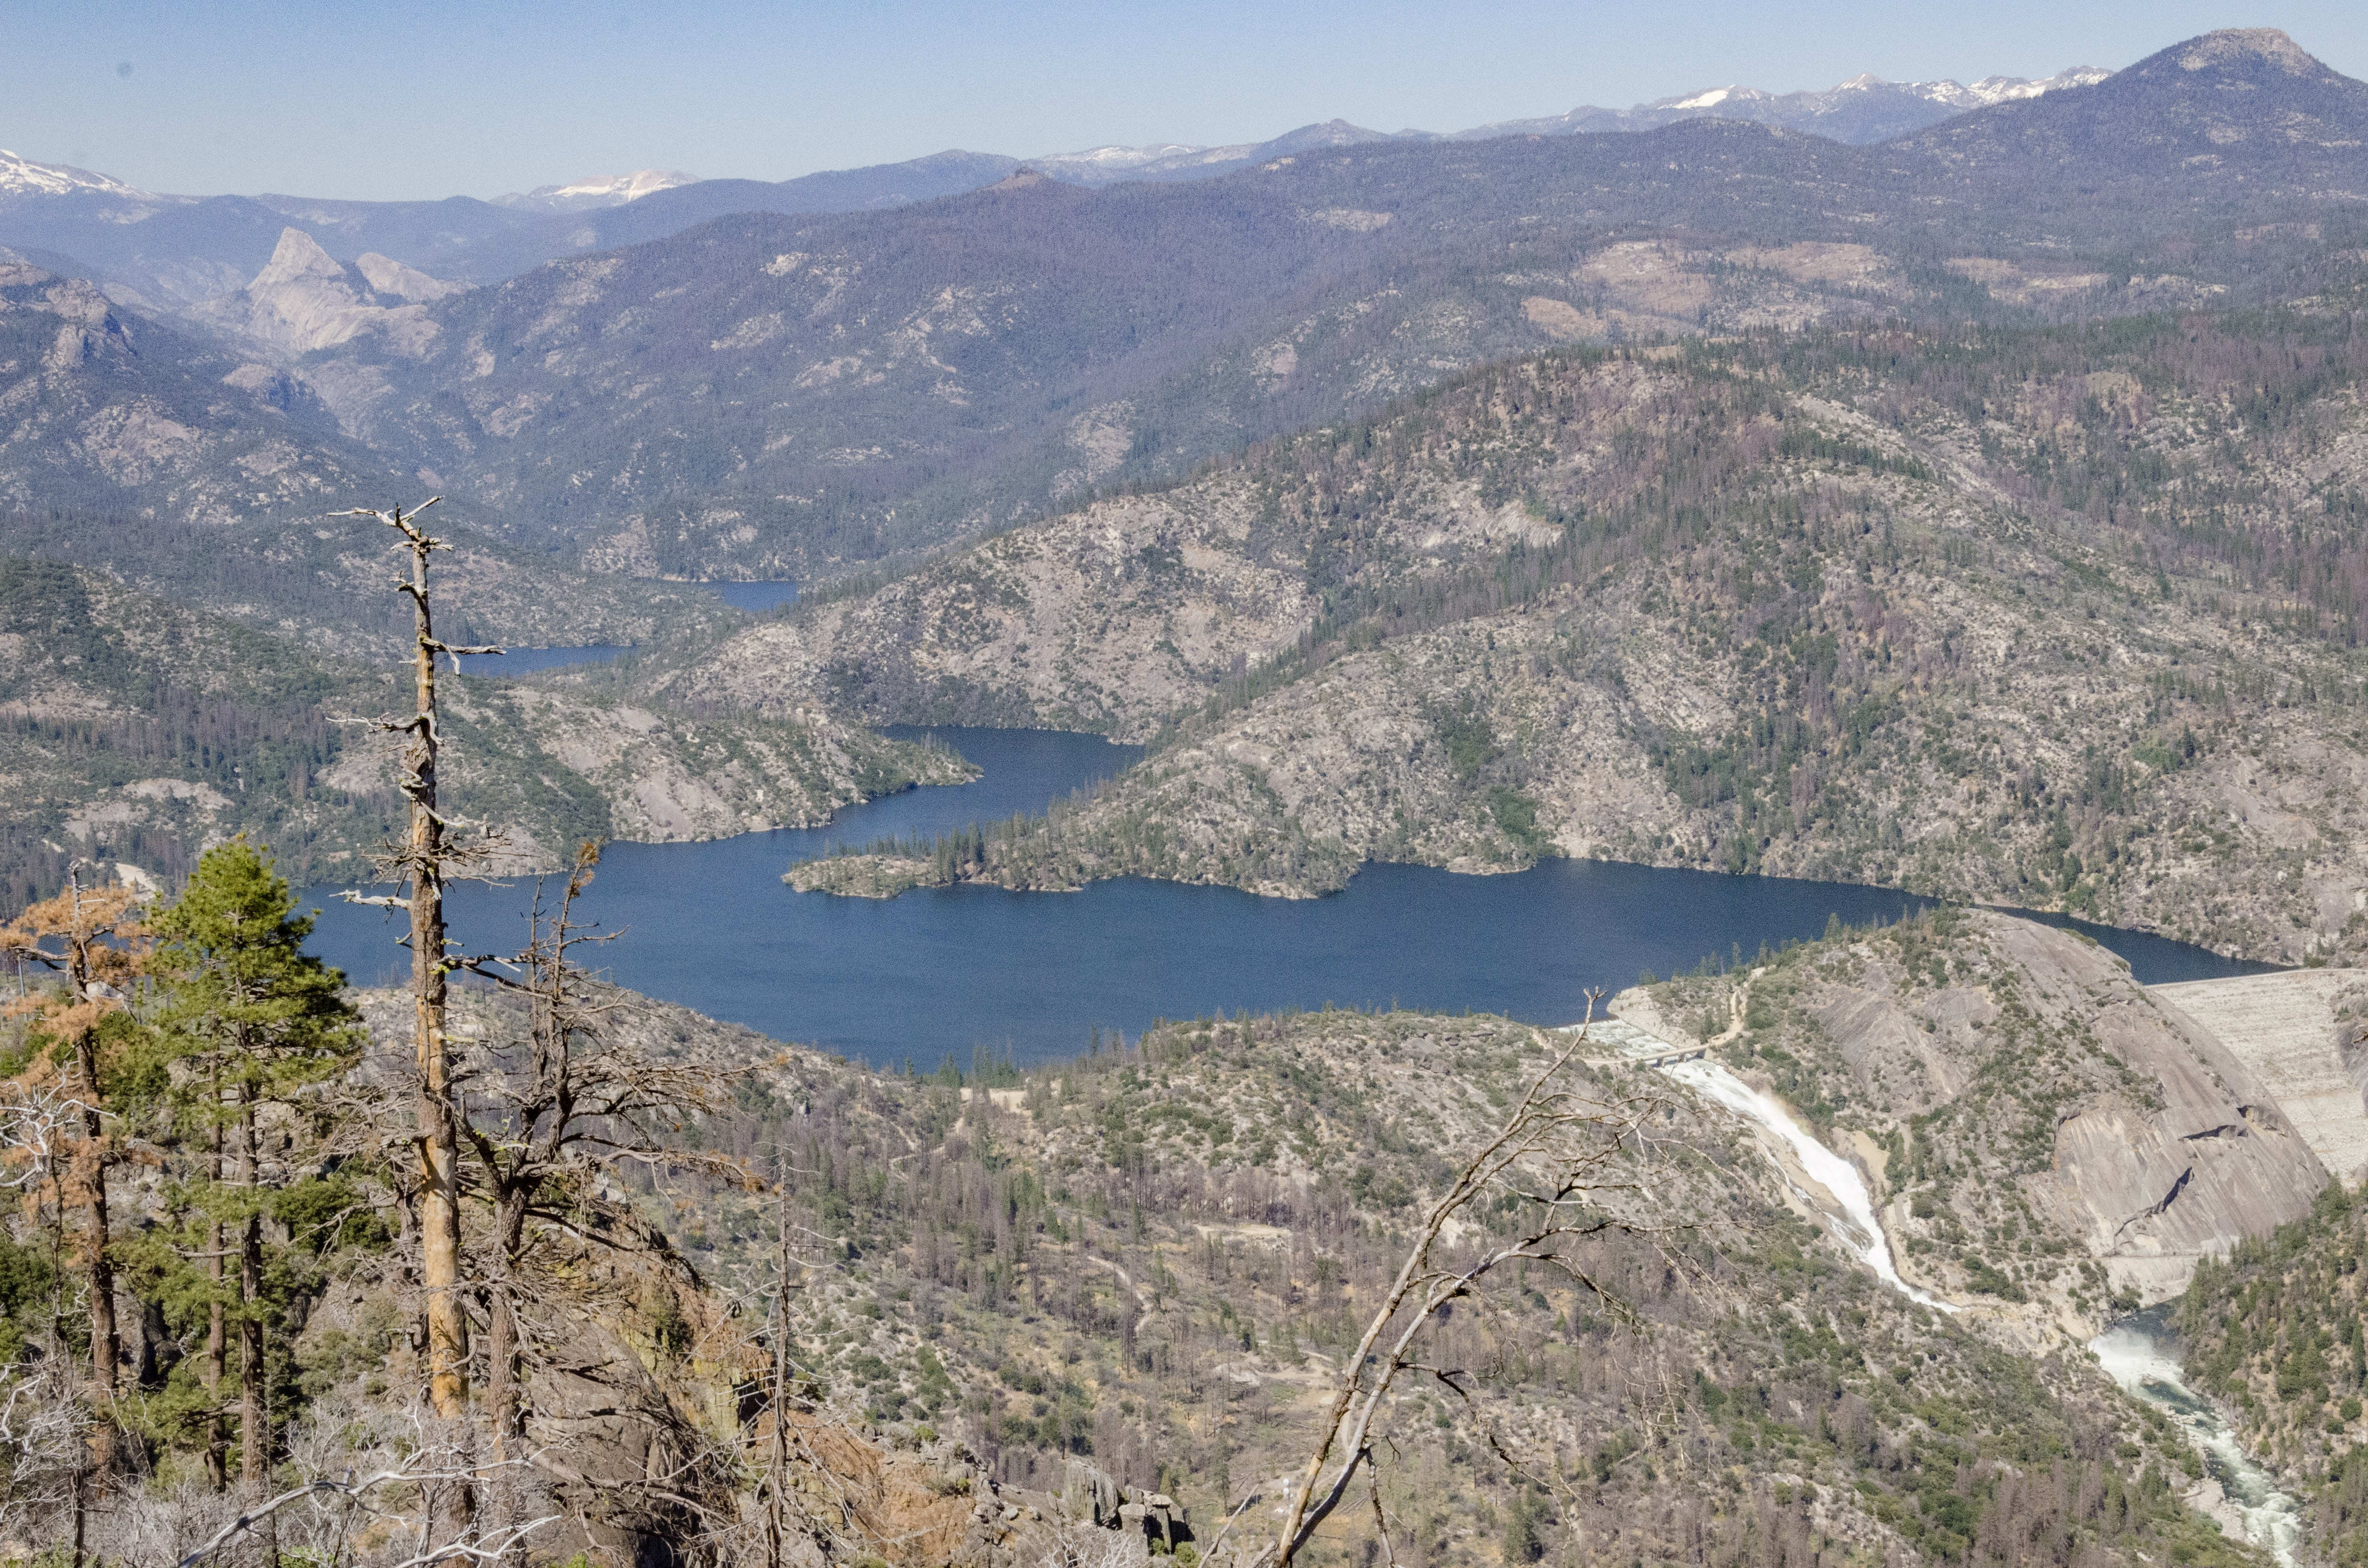 The panoramic view at Mile High includes Mammoth Pool Reservoir and the Minaret Range.